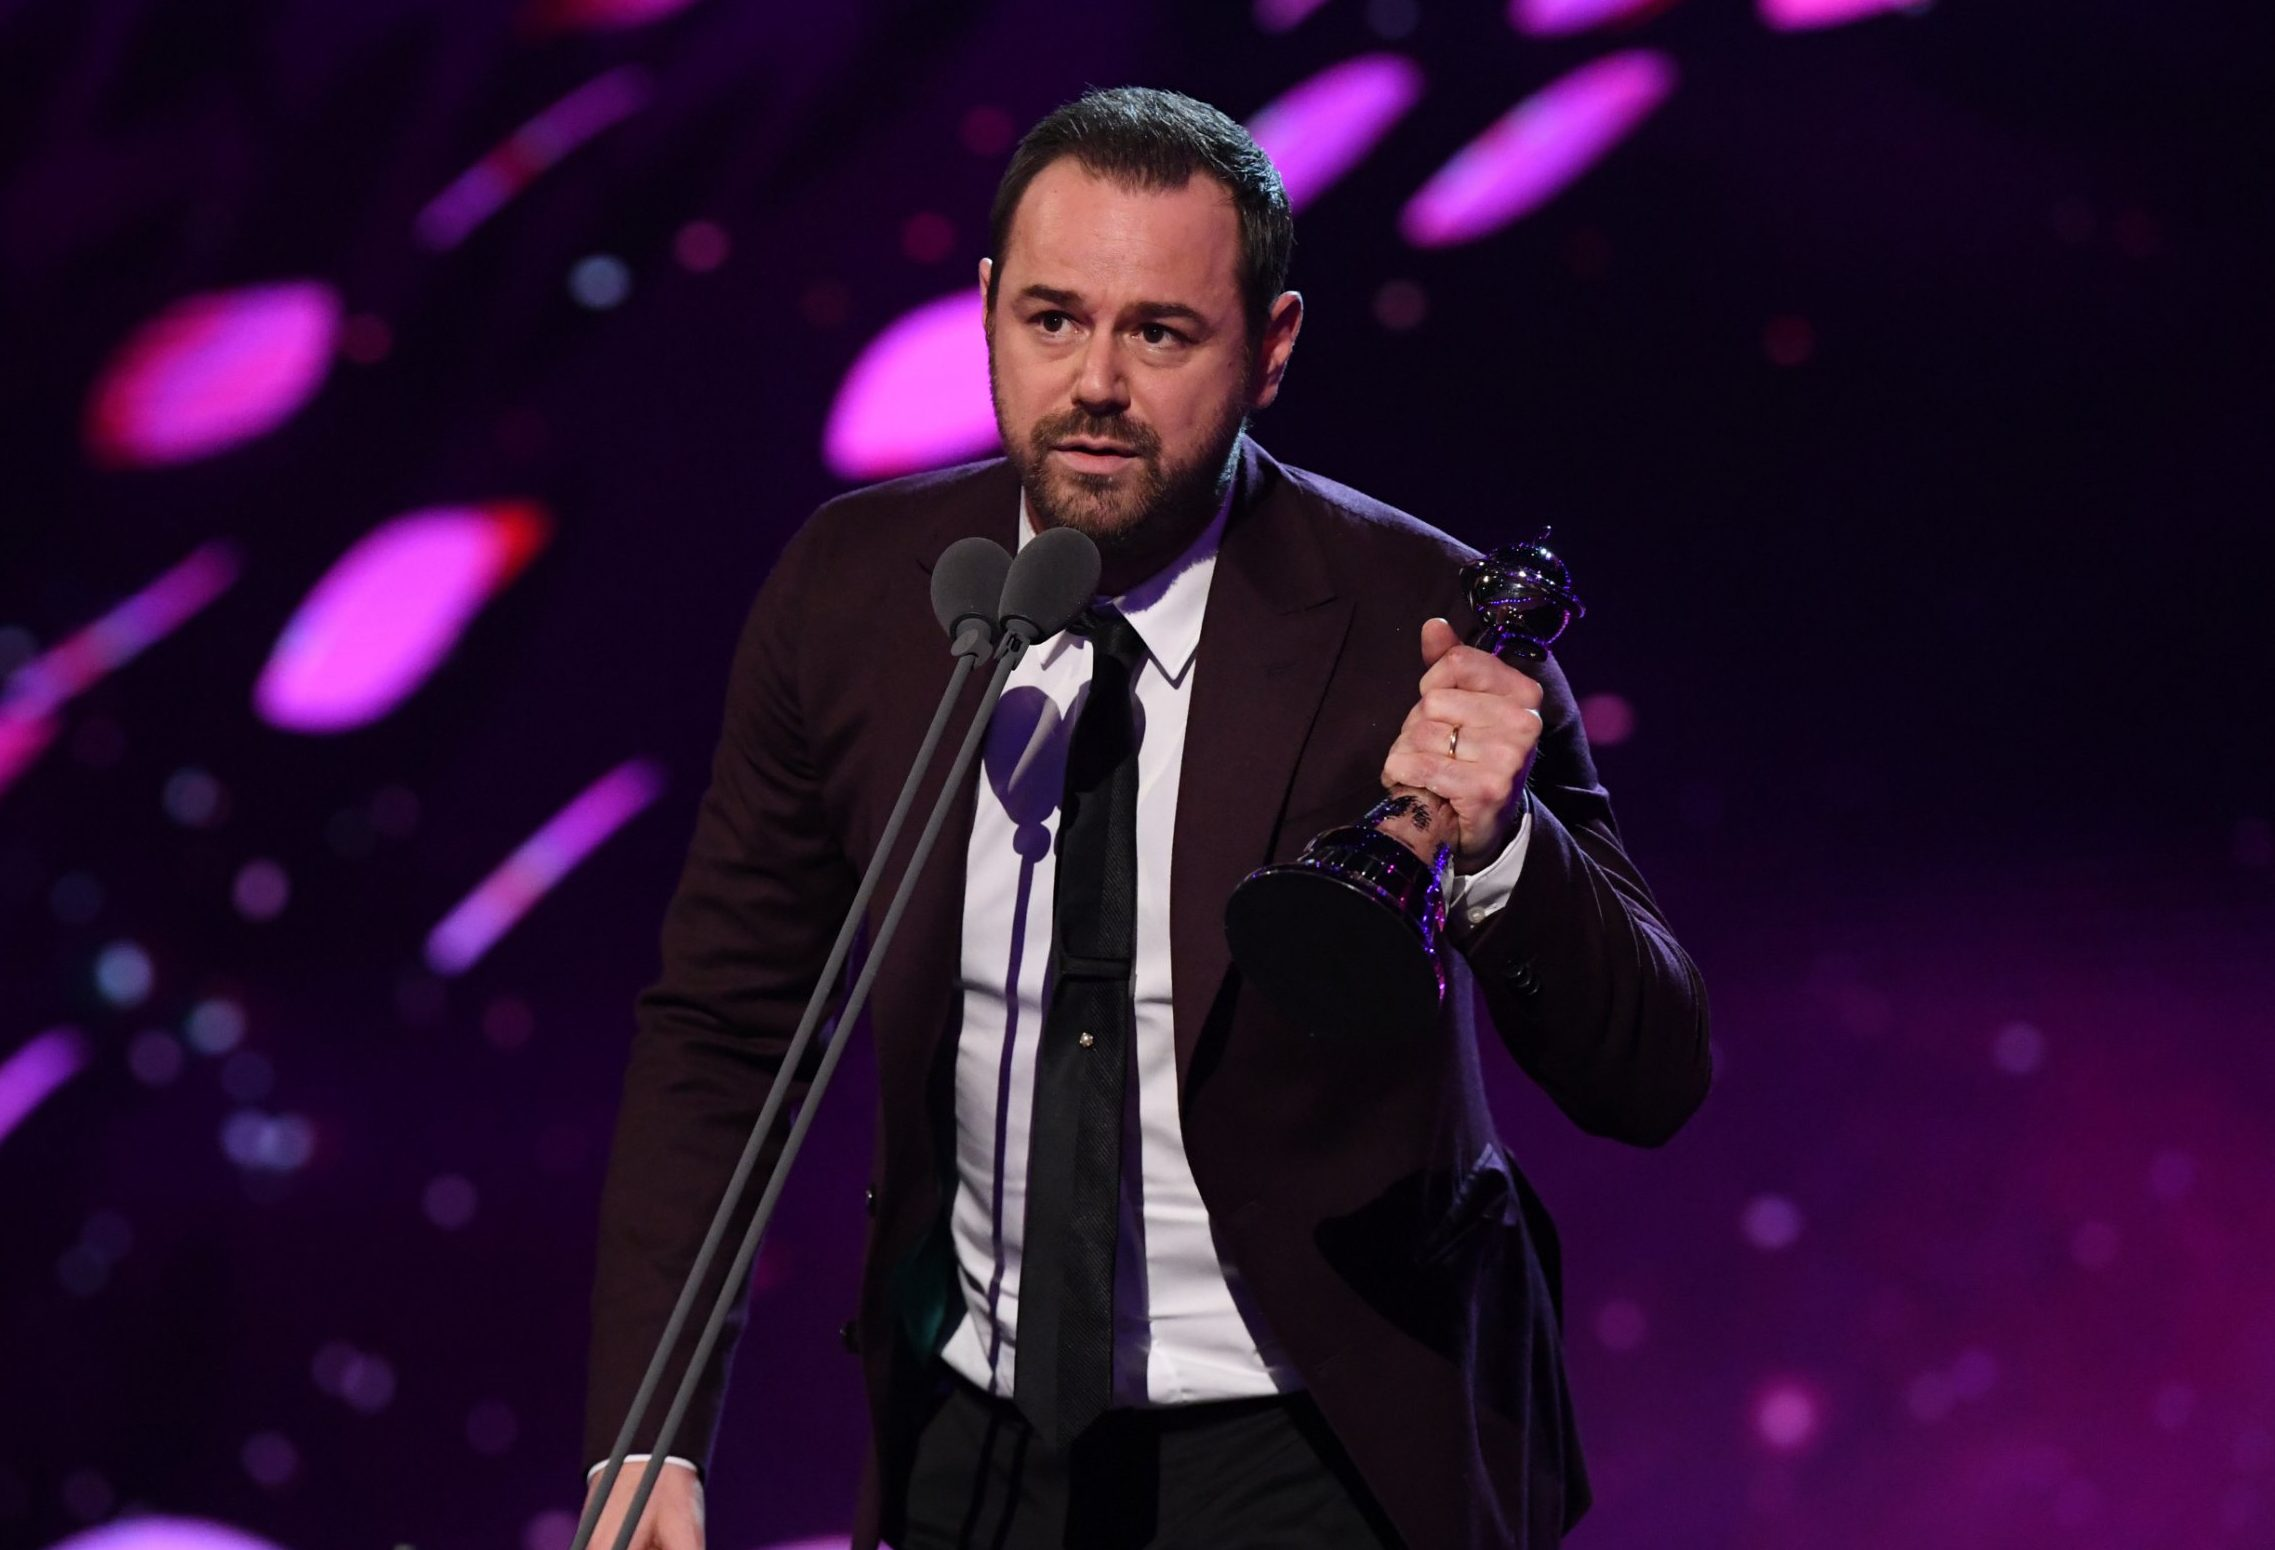 Dermot O'Leary apologises after Danny Dyer drops f-bomb in emotional NTAs speech